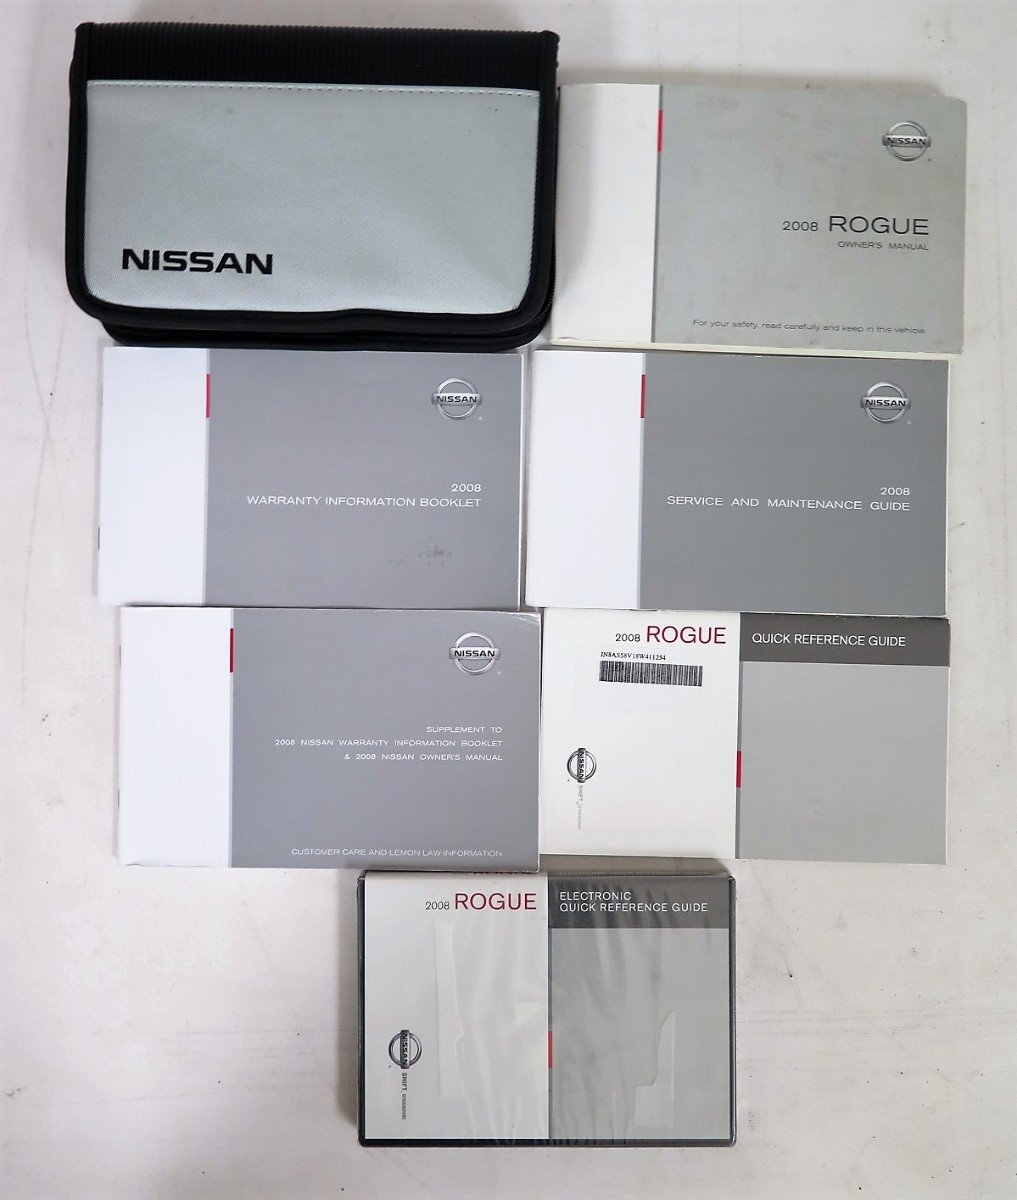 Nissan Rogue Owners Manual: Owner's ManualService Manual order information